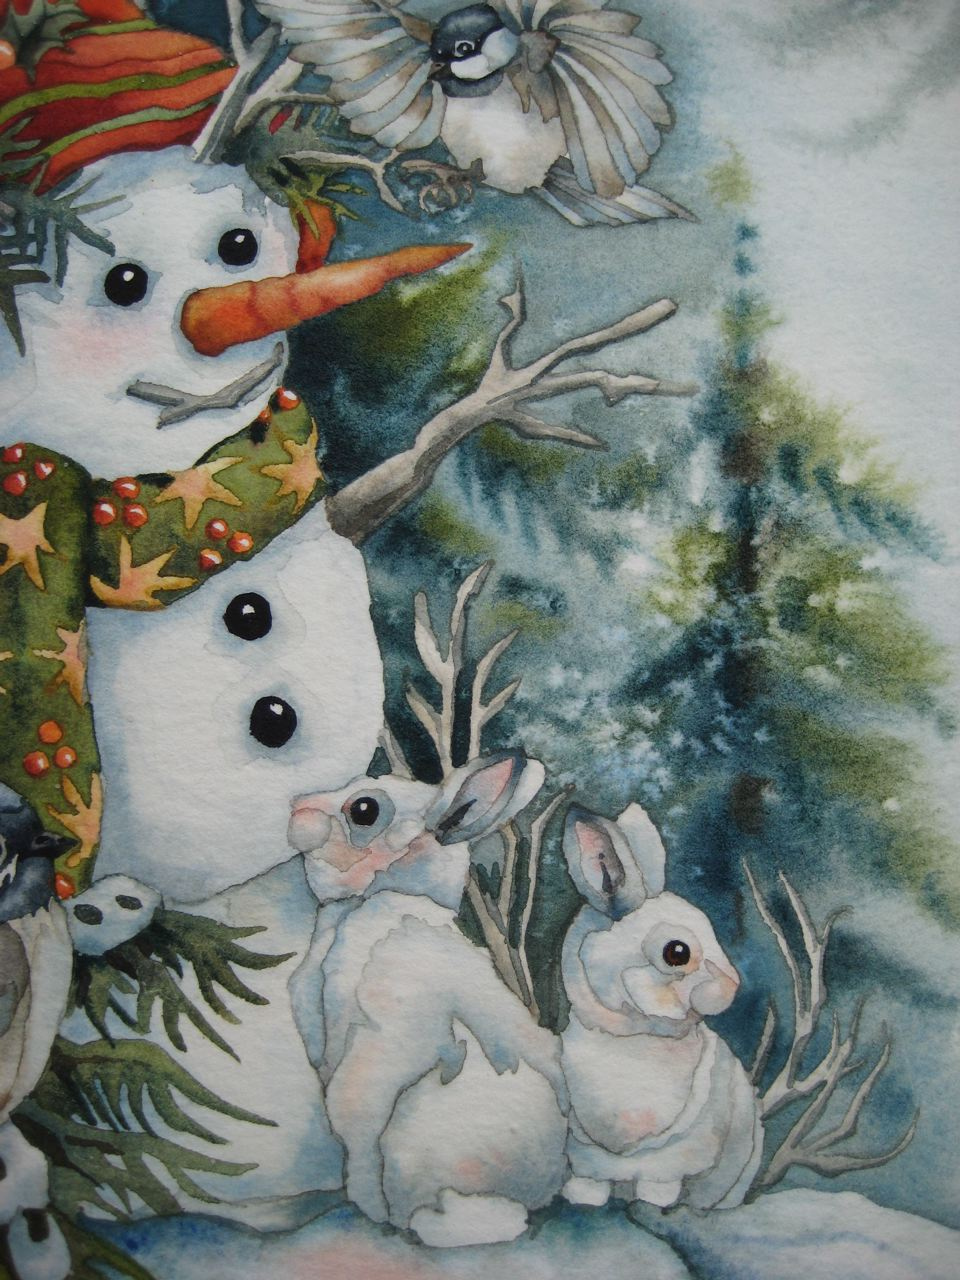 Herb garden and snowman art with heart drawing